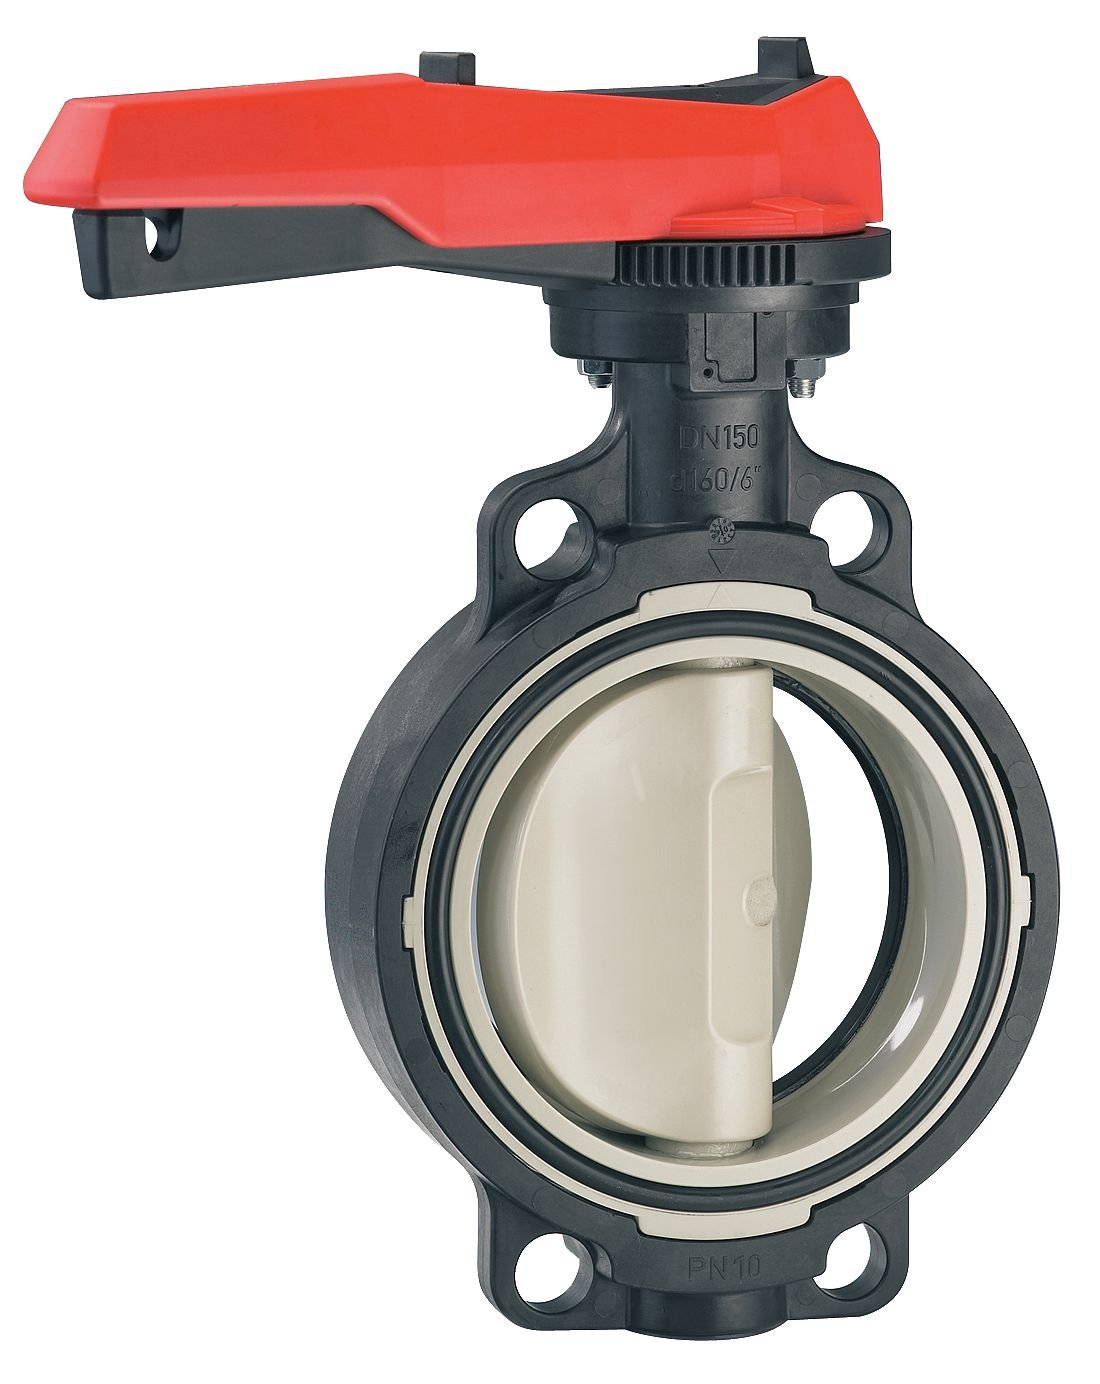 150 psi 167567022 GF Piping Systems 2 Pipe Size Wafer-Style Butterfly Valve Polypropylene